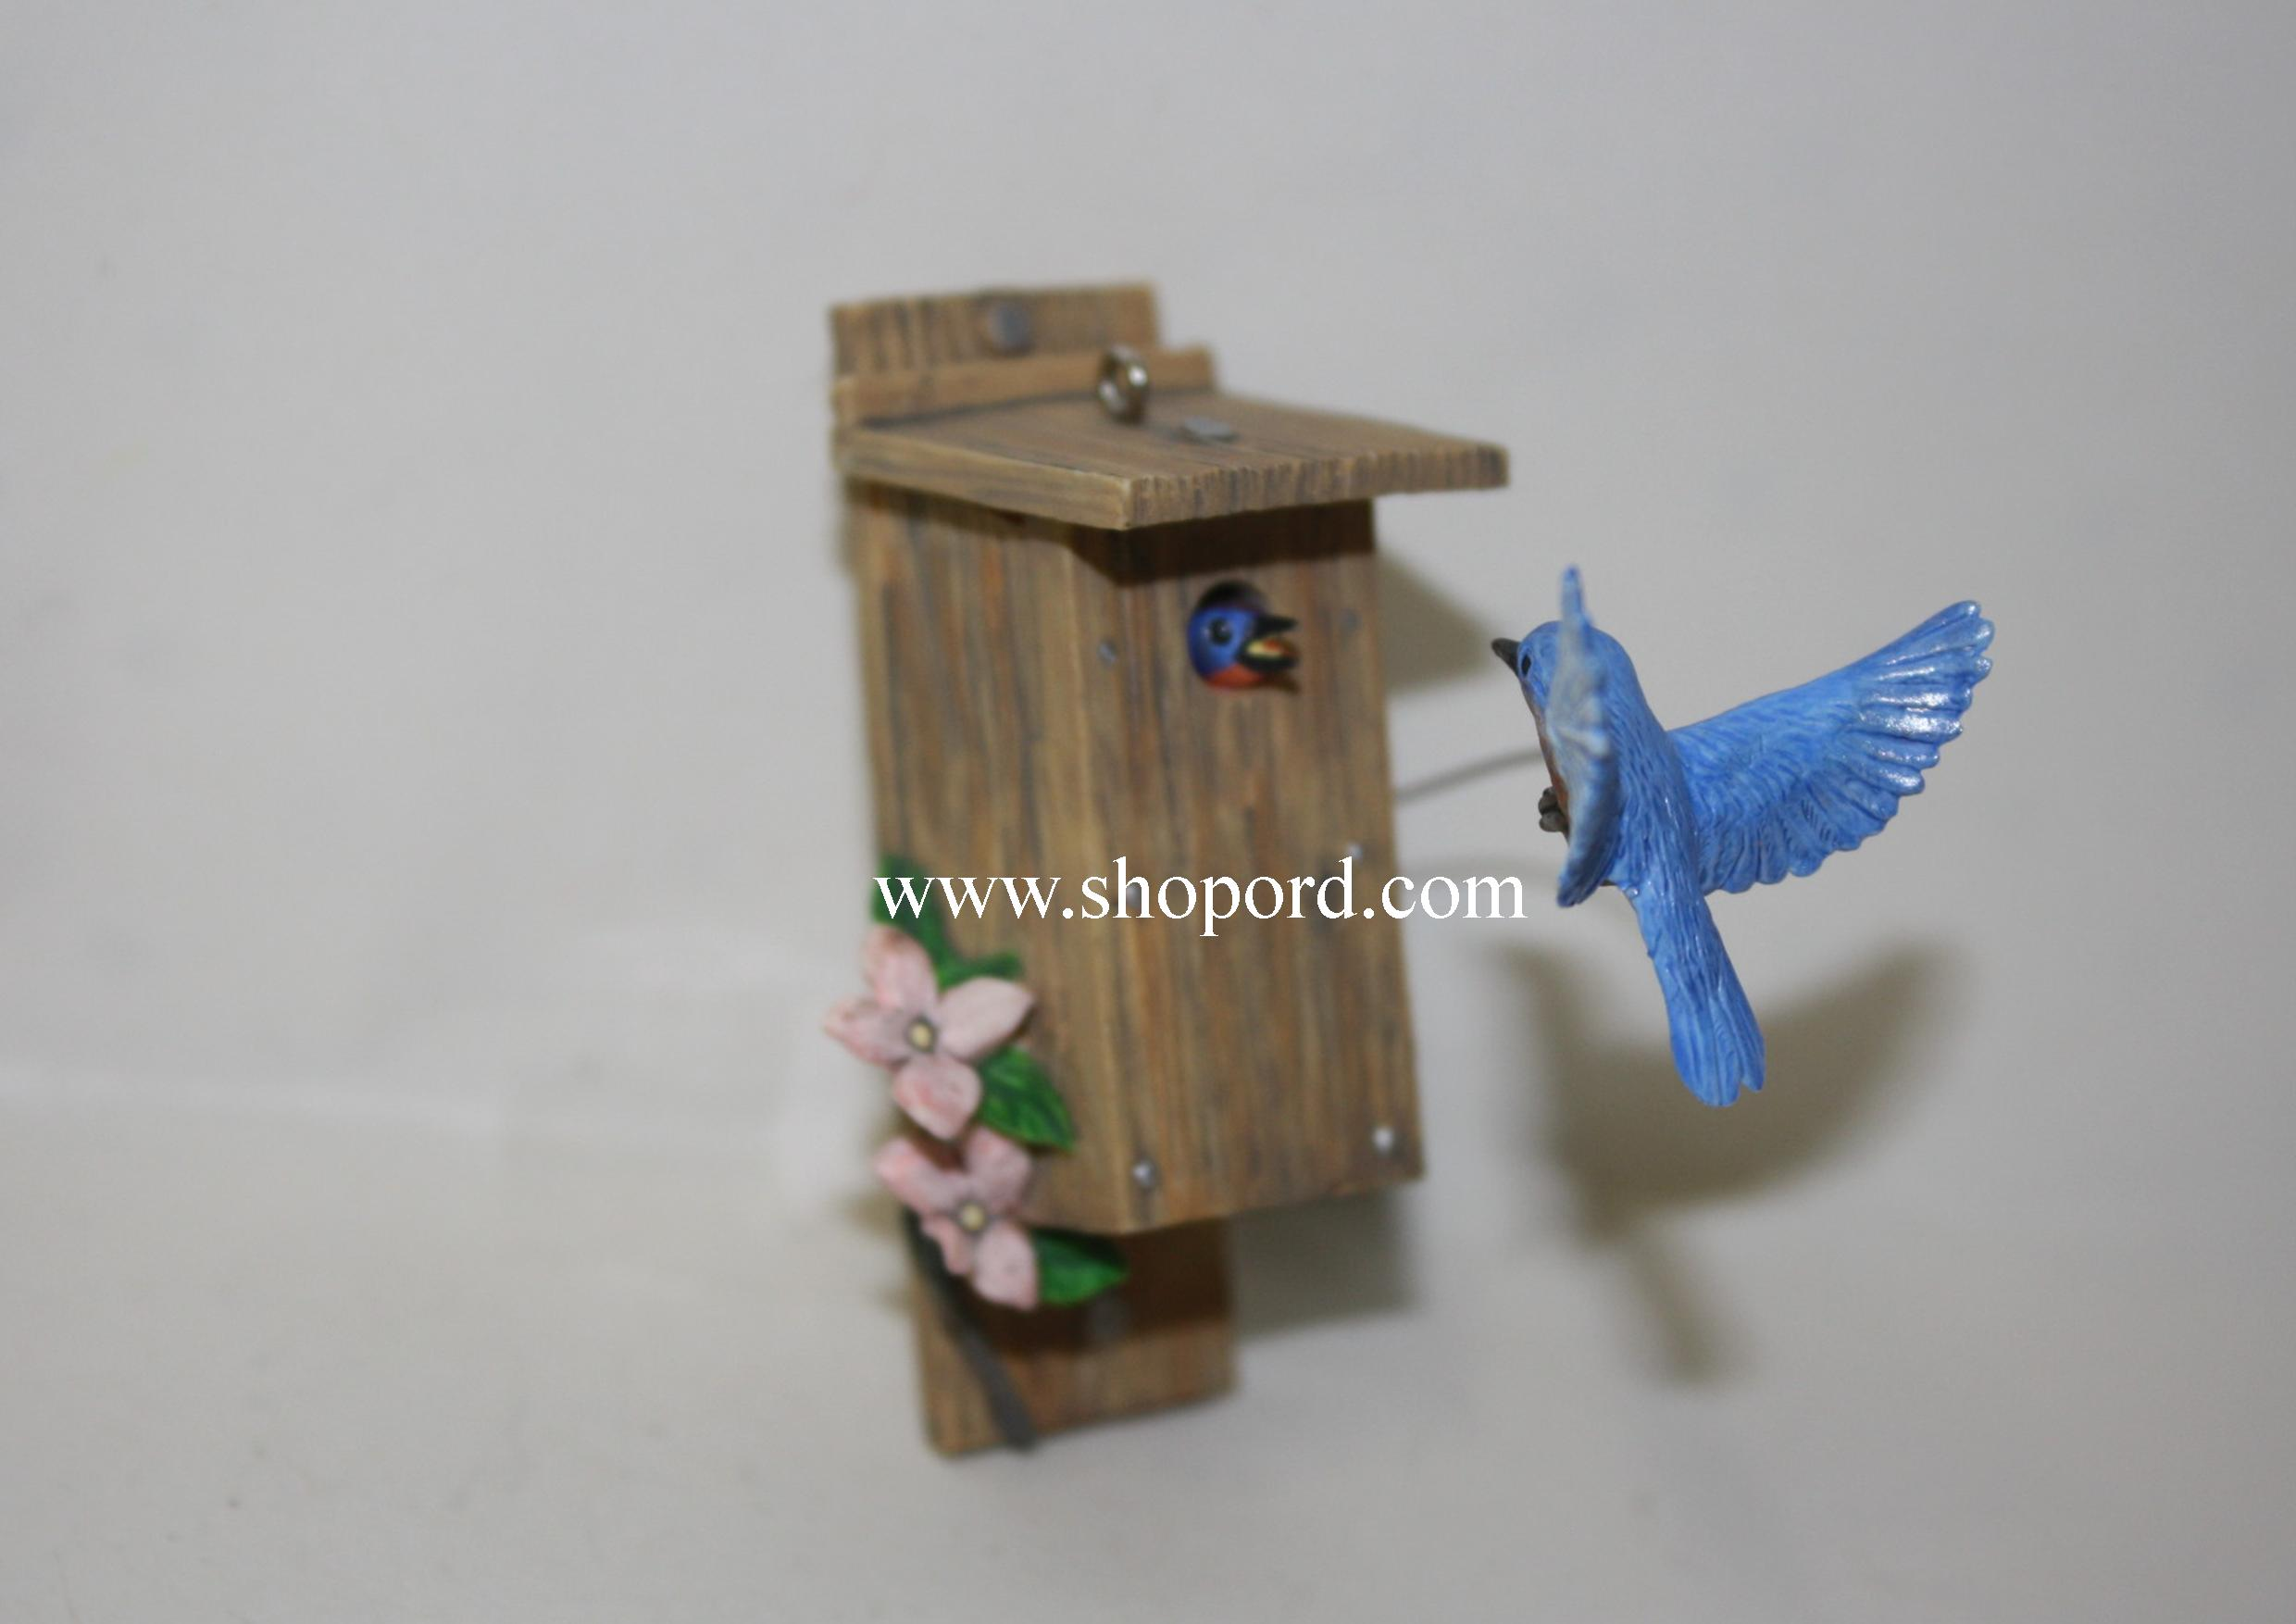 Hallmark 2000 Eastern Bluebird Spring Ornament 1st In The Spring Is In The Air Series QEO8451 Slightly Damaged Box